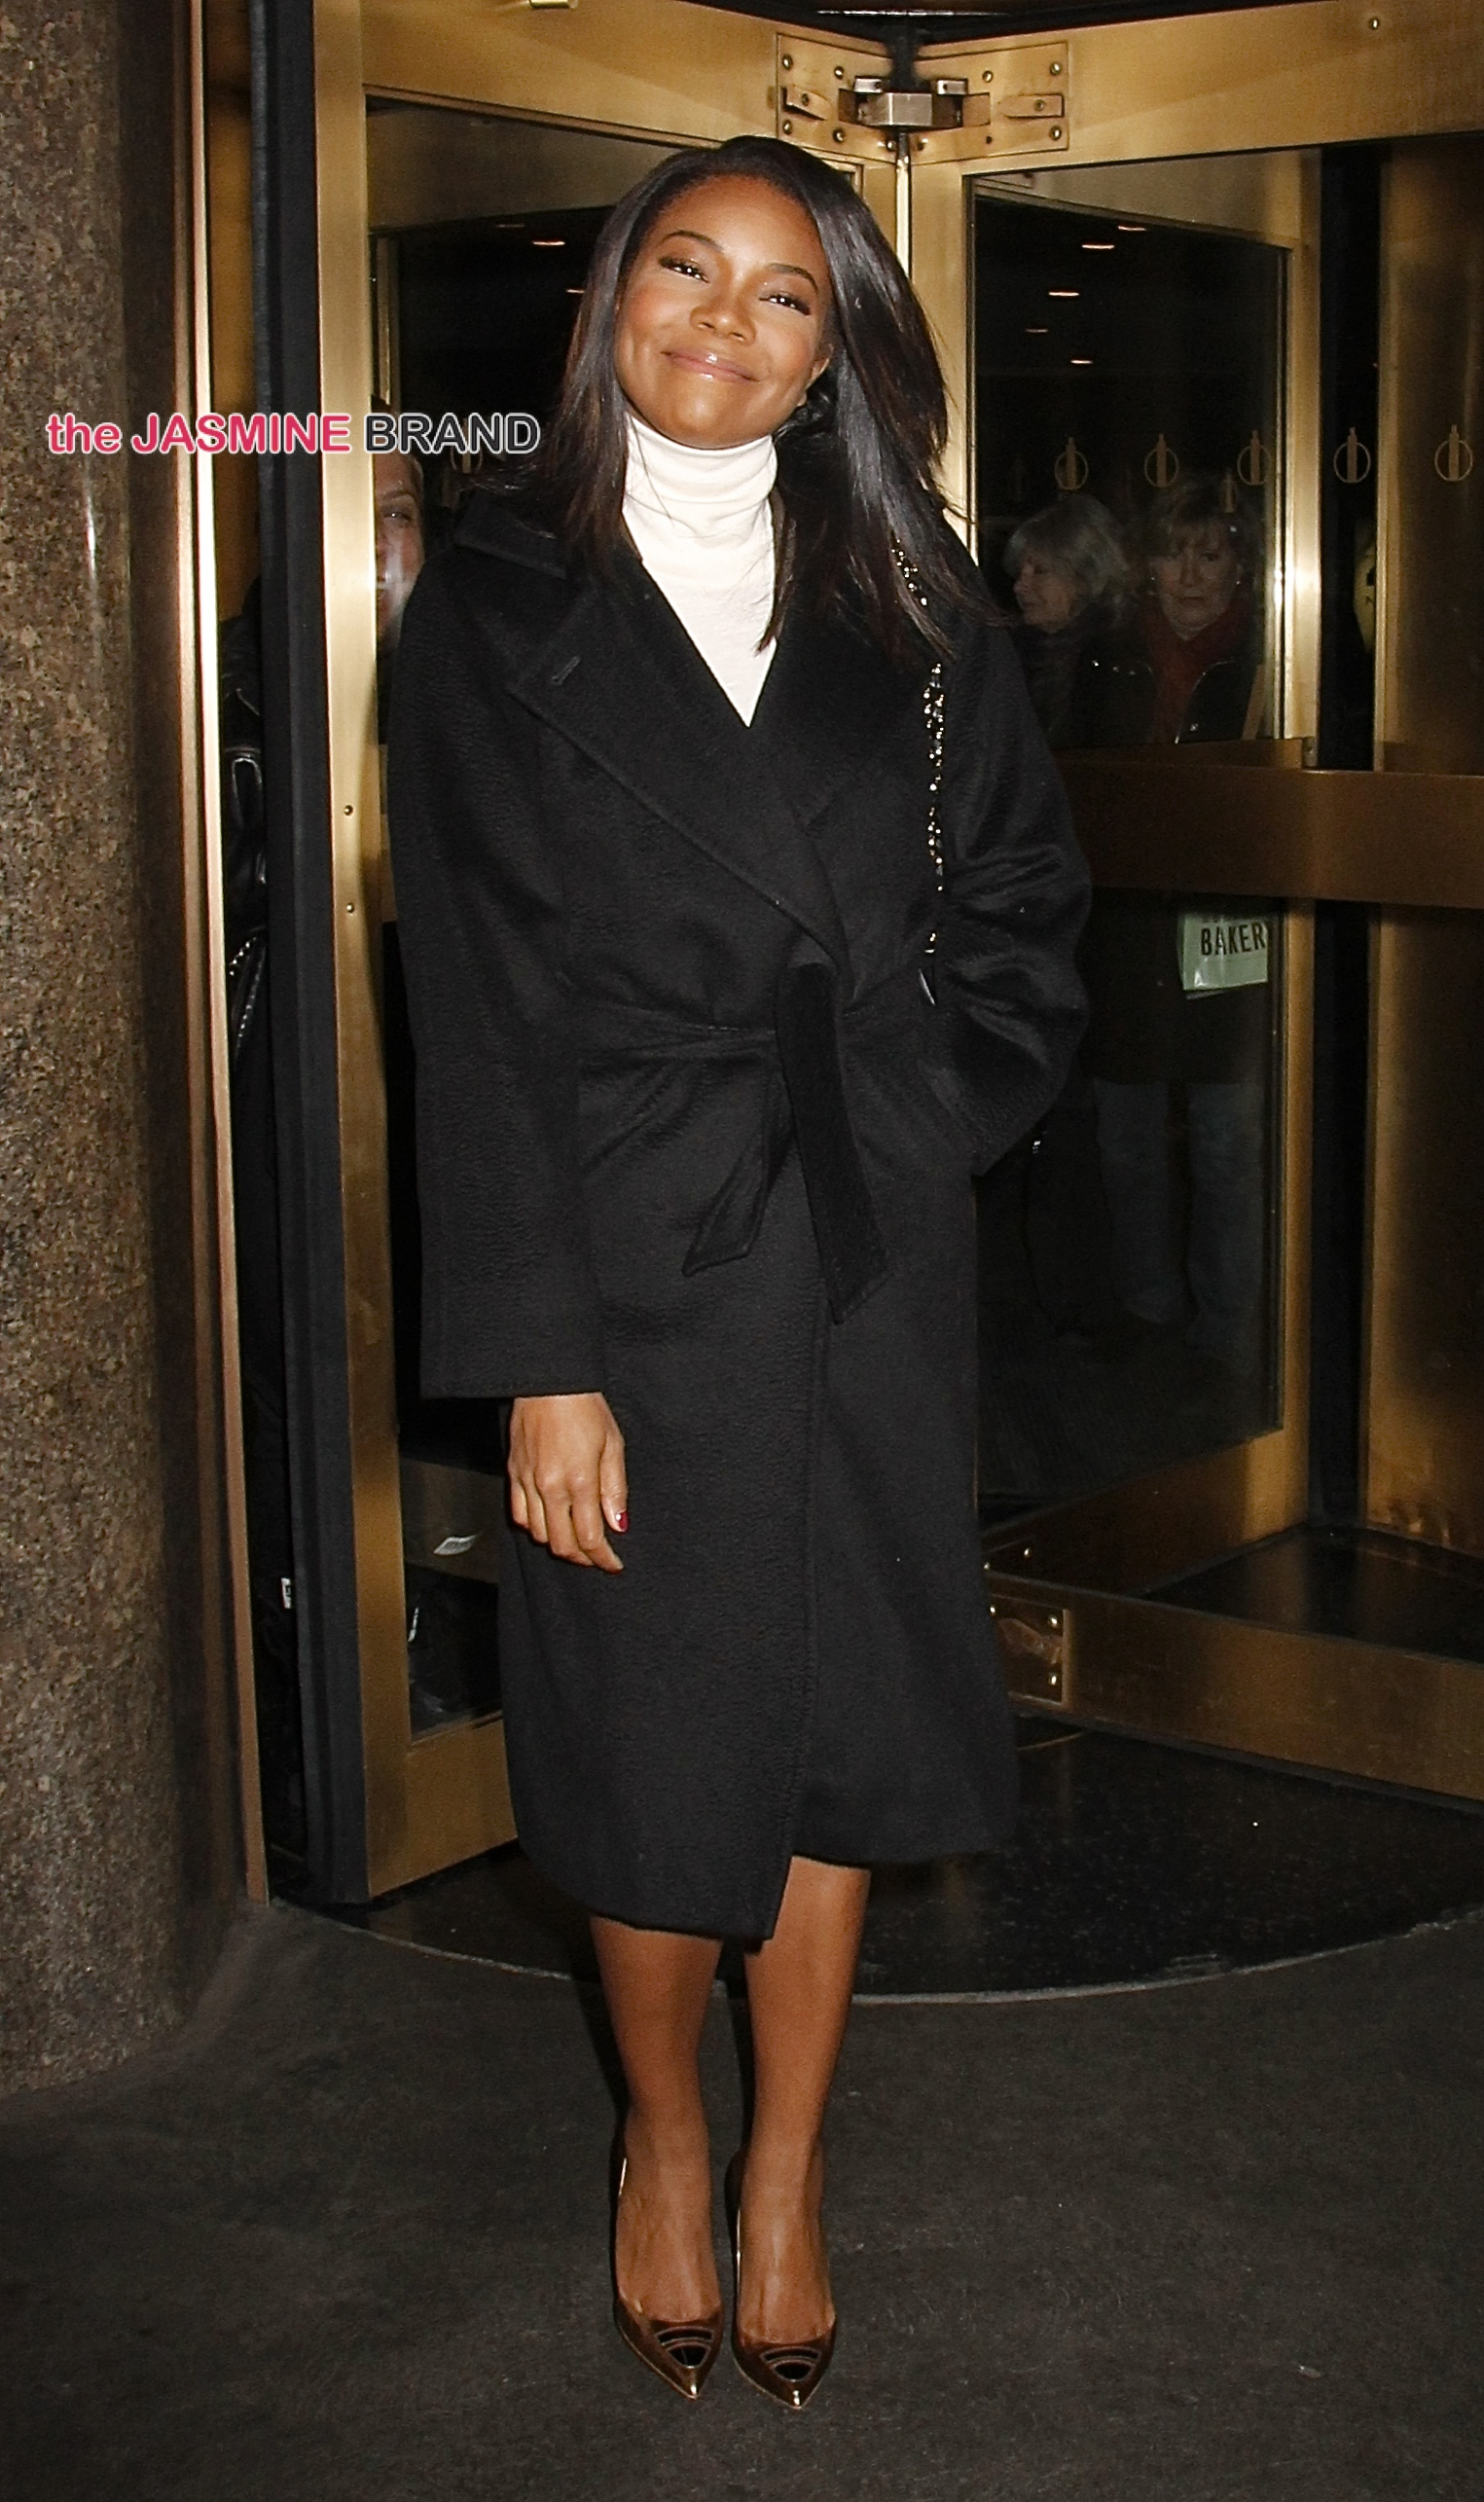 Gabrielle Union spotted leaving NBC Studios in NYC's Rockefeller Center